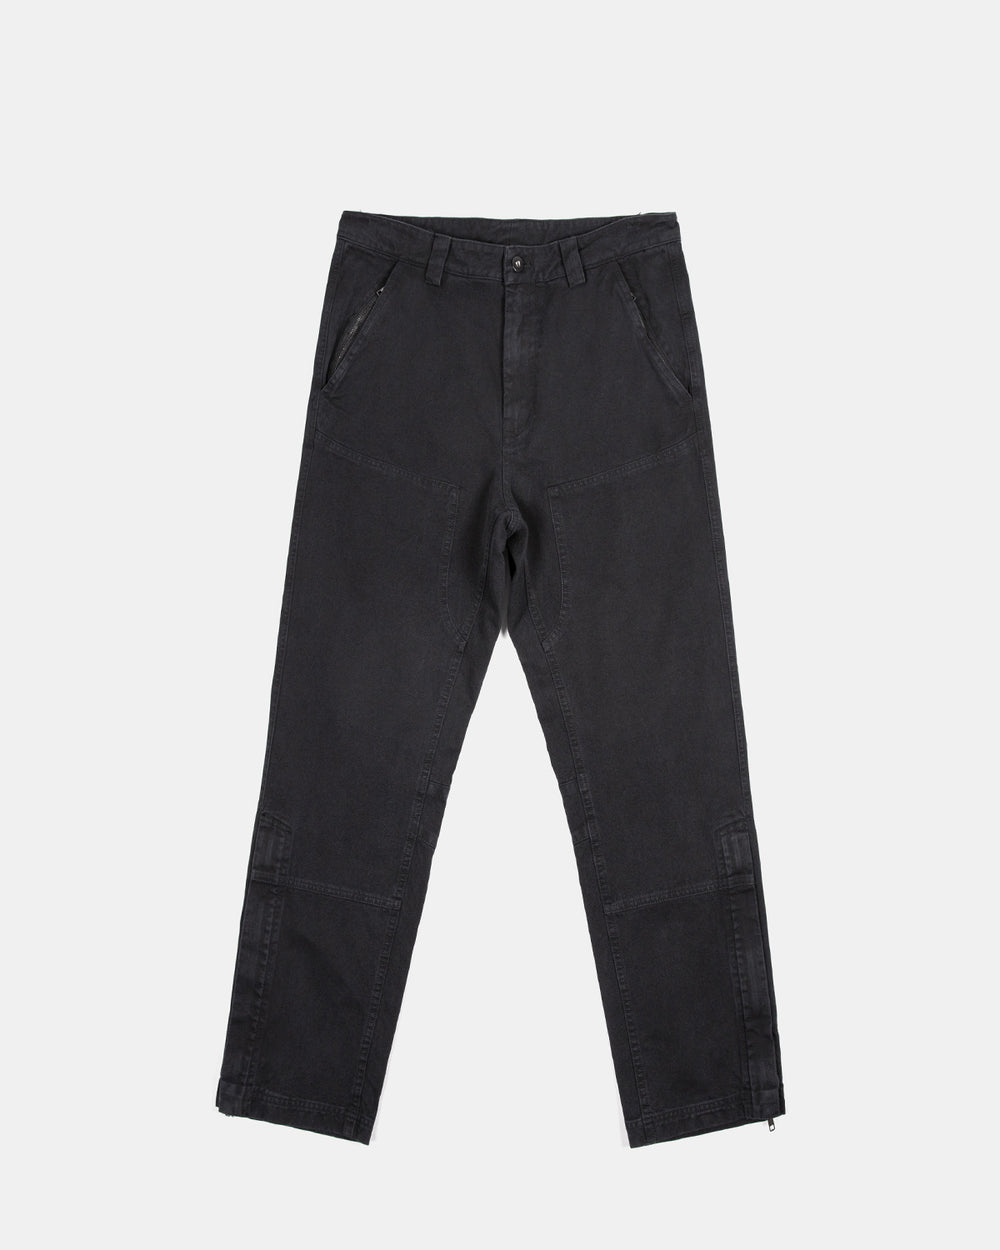 adidas Originals - Yeezy Season 1 Men's Worker Pant (Caviar)